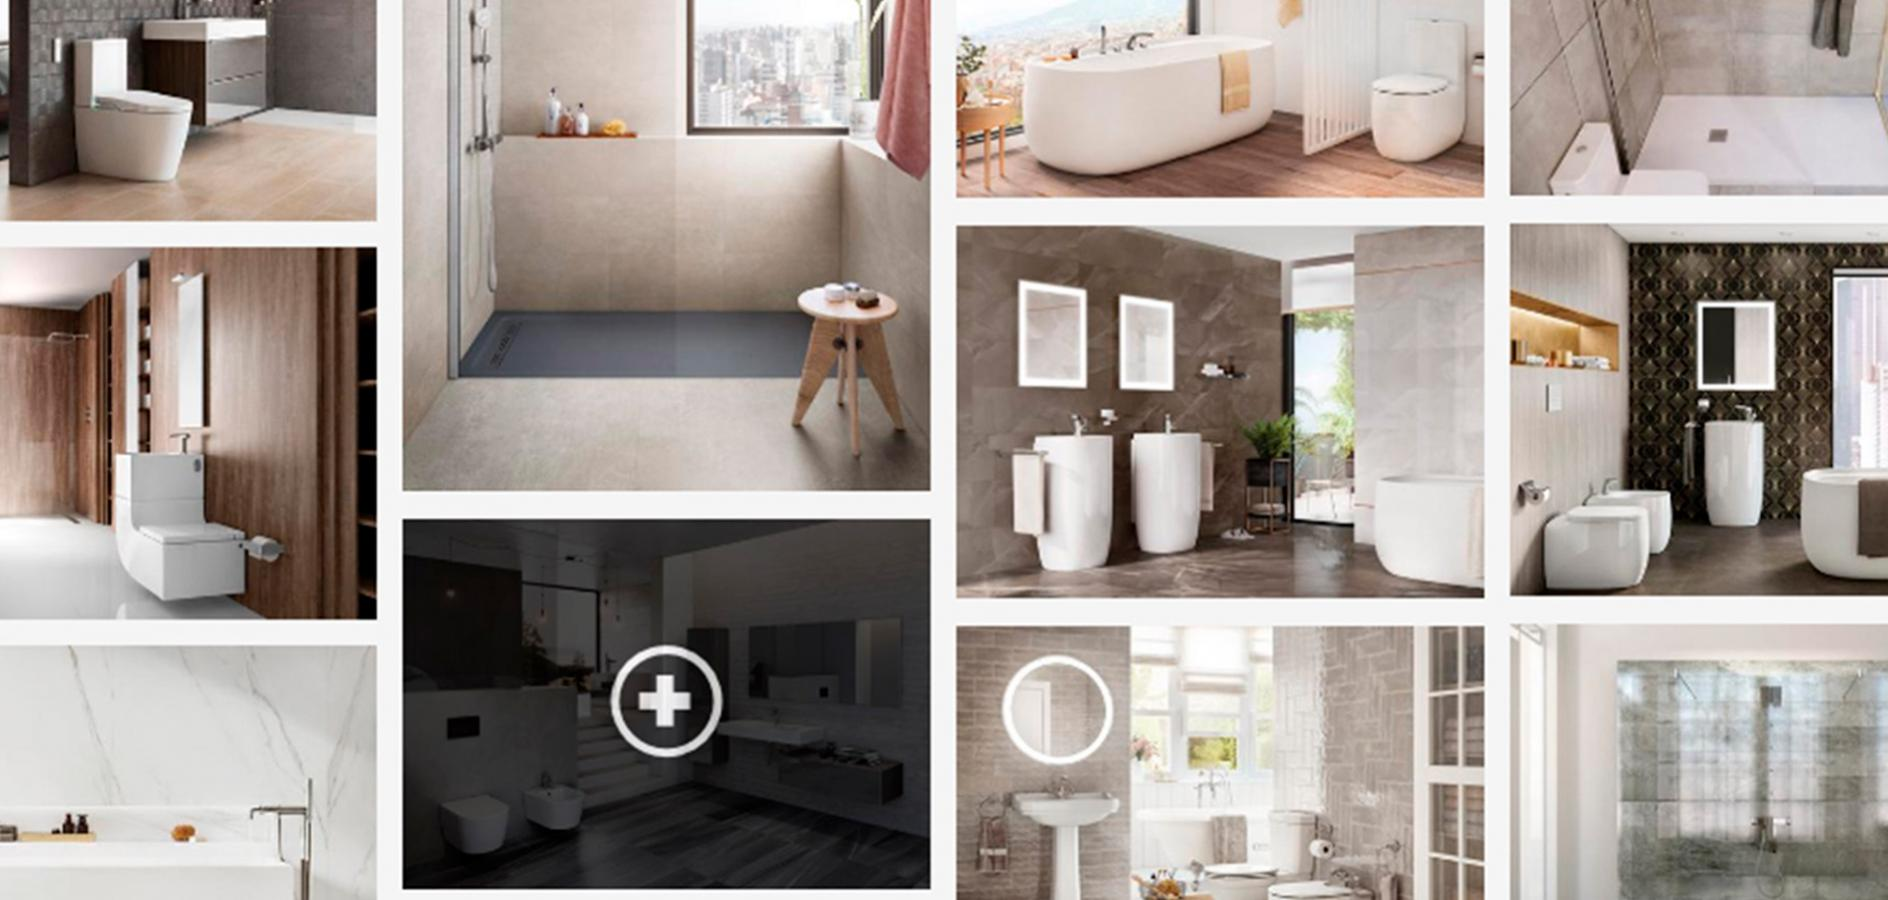 The best bathroom design software online, by Roca  Roca Life